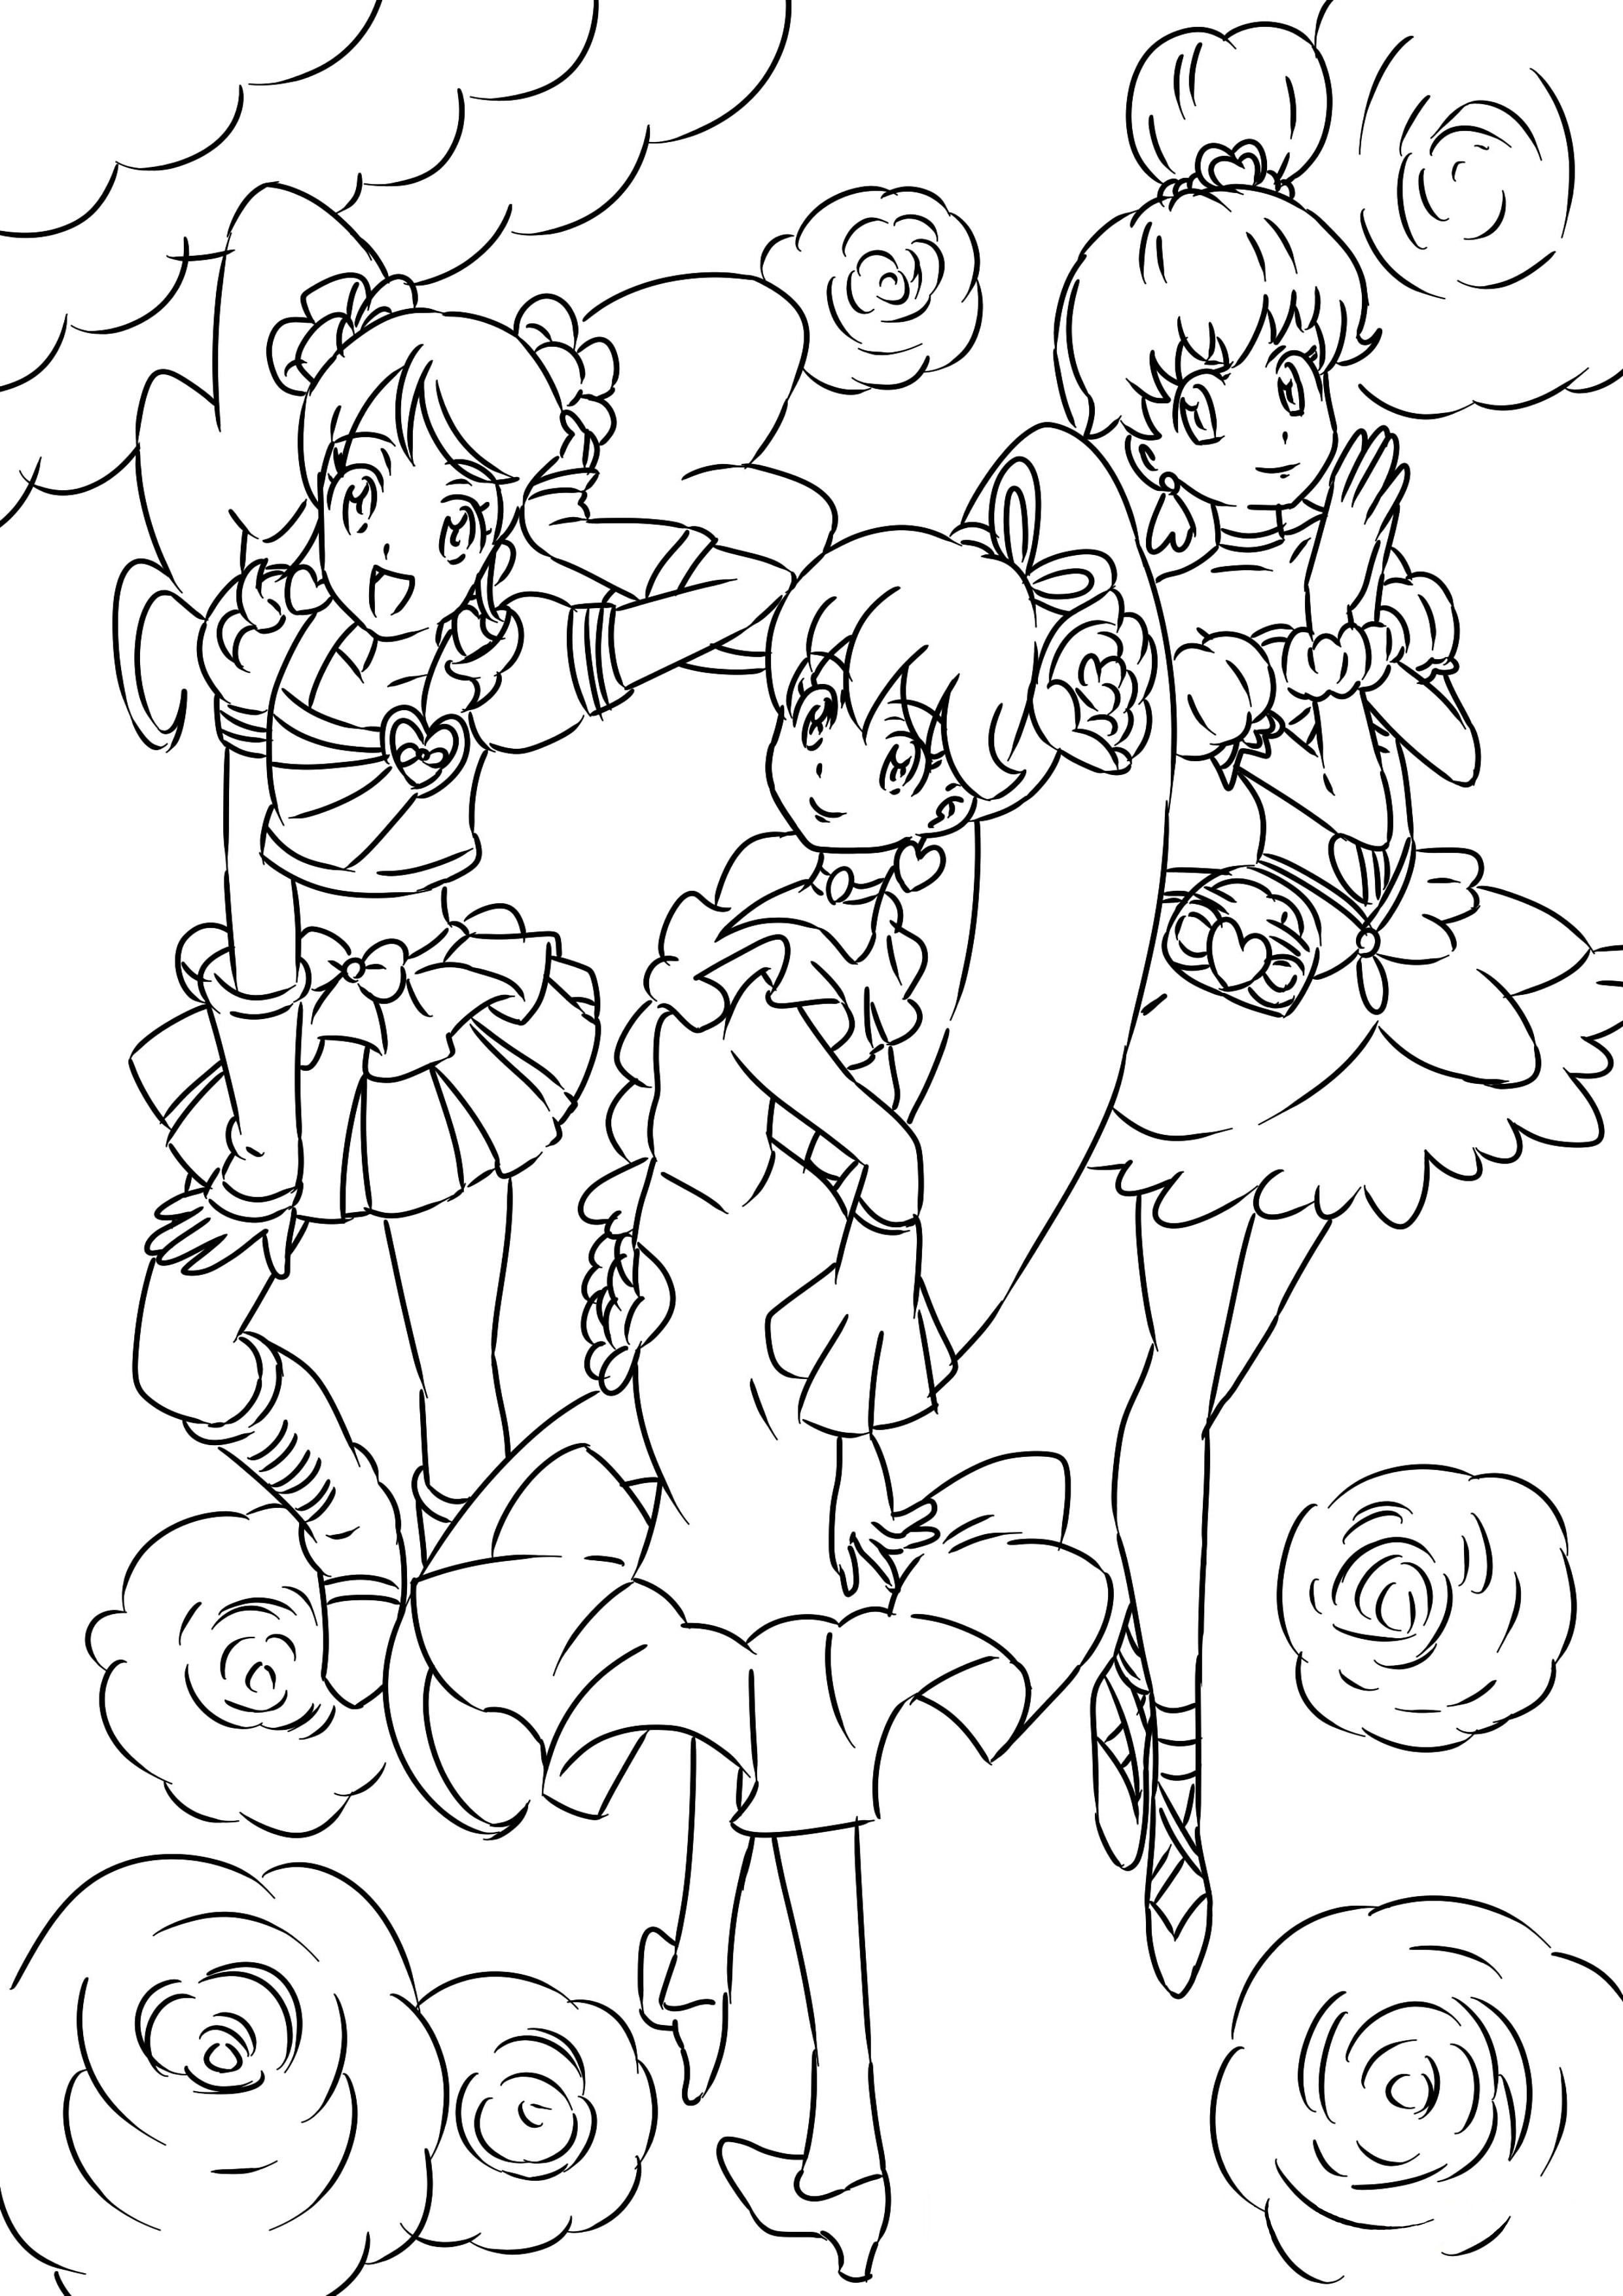 Happiness charge Precure | Happiness charge | Pinterest | Adult ...